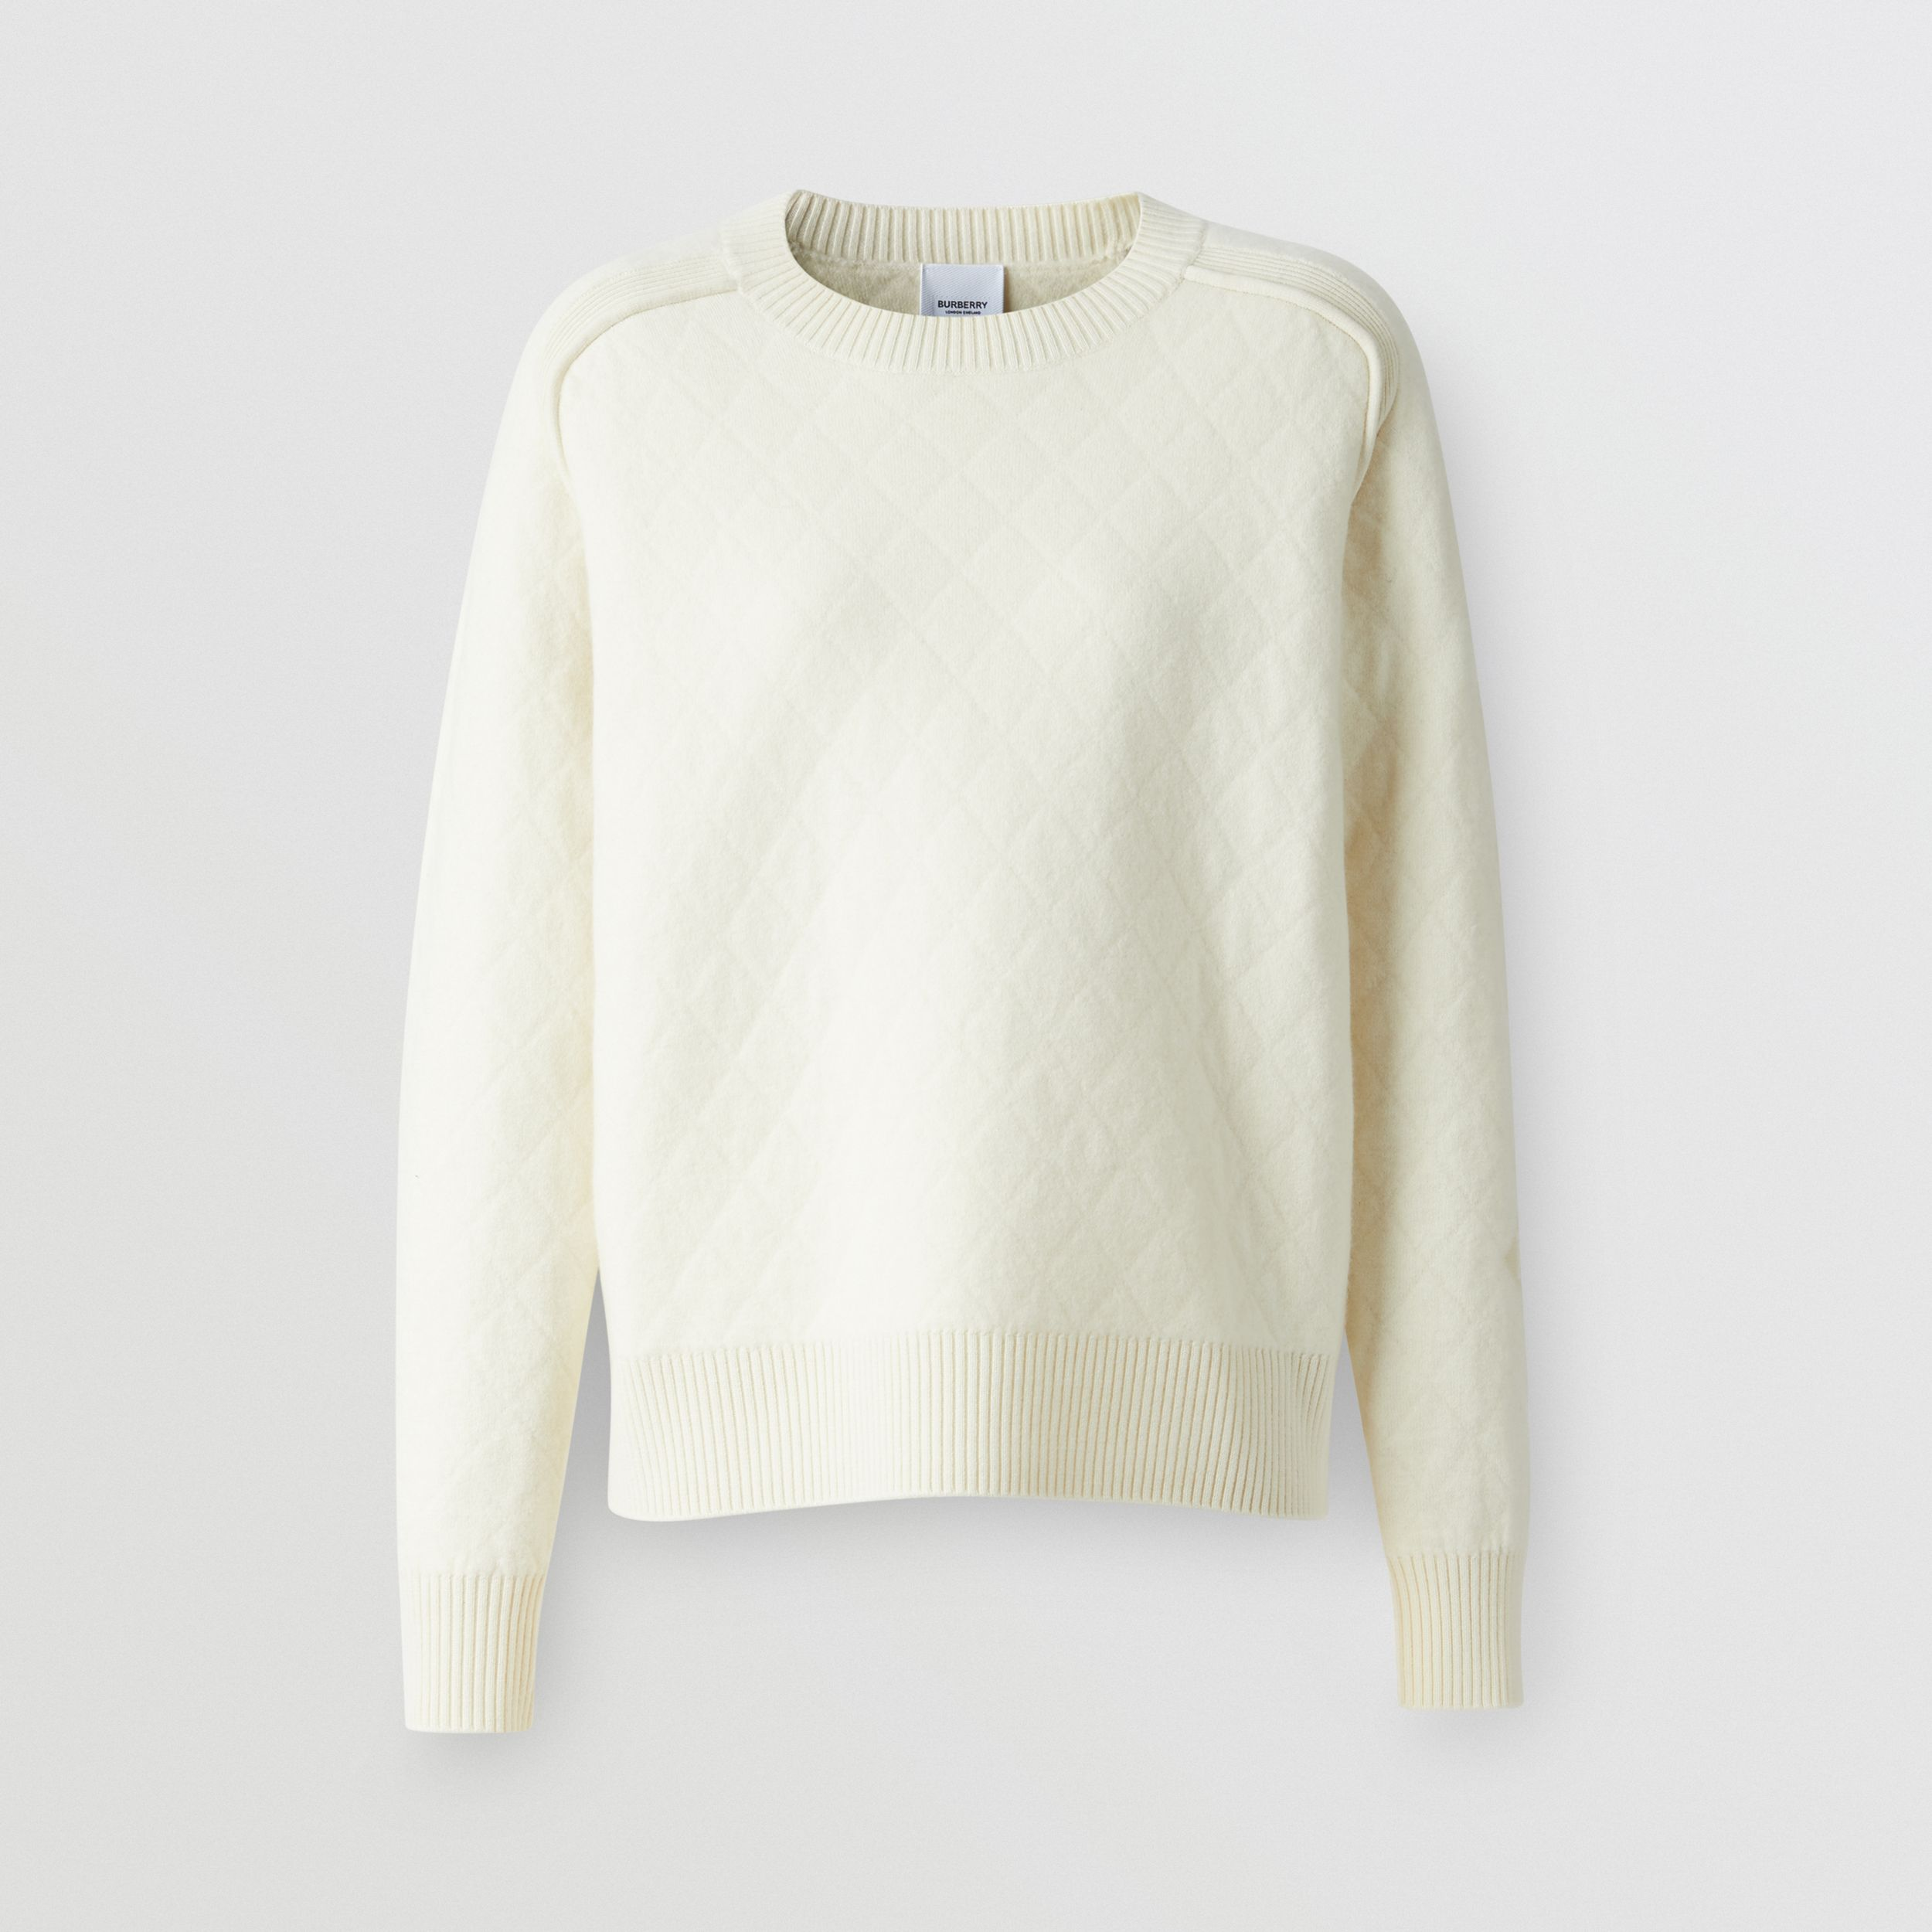 Diamond Knit Wool Sweater in Cream - Women | Burberry - 4